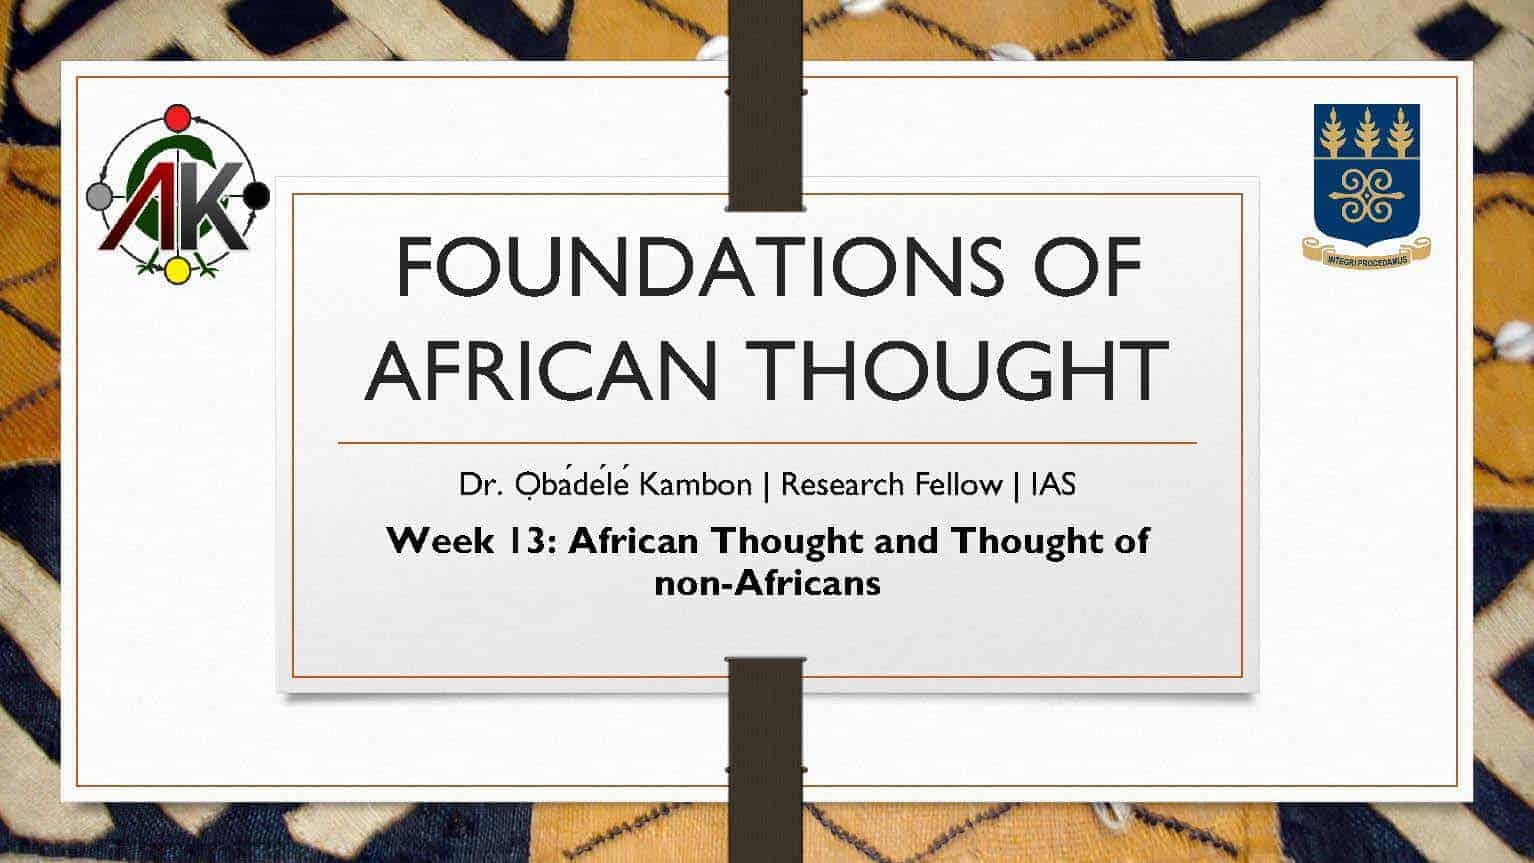 Foundations of African Thought #13: African Thought and Thought of non-Africans